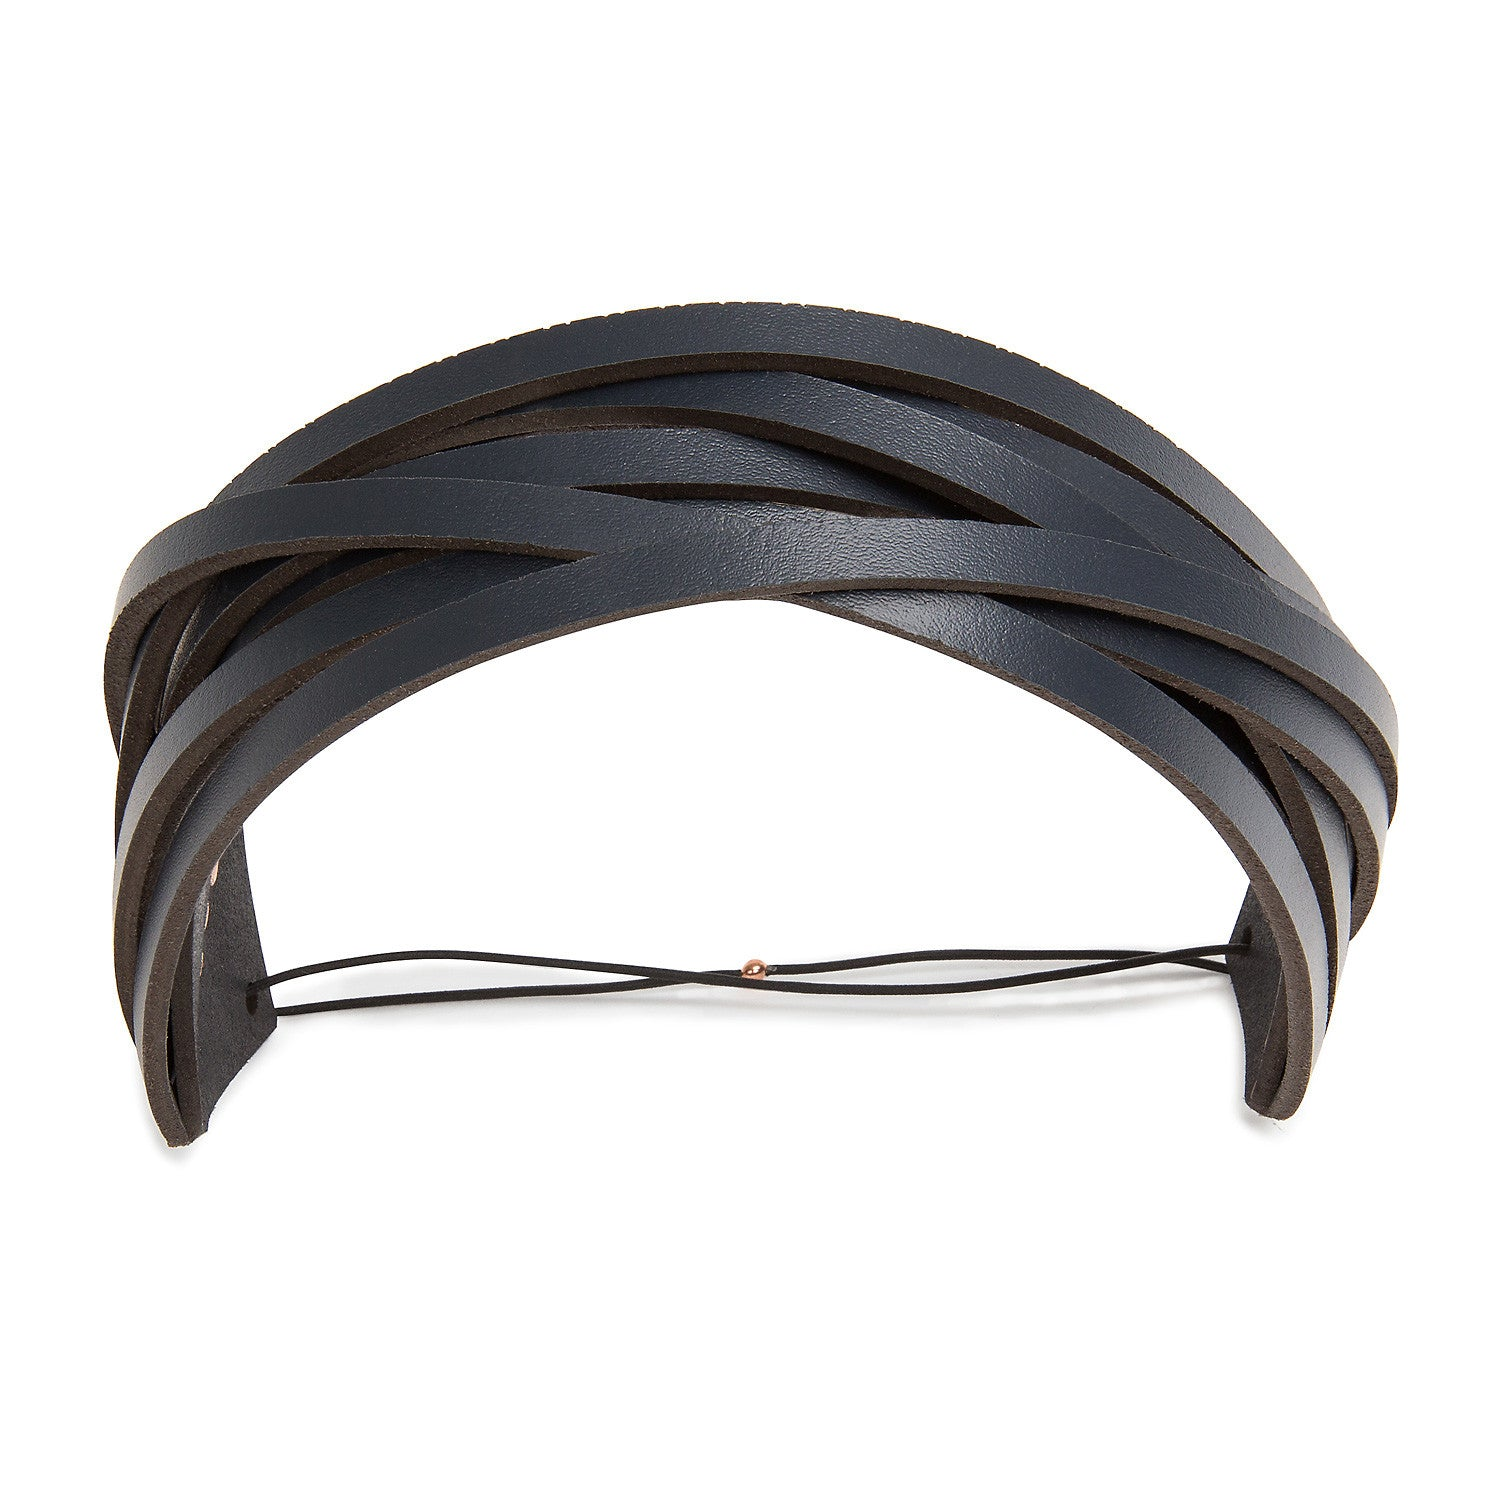 The Season leather hairband